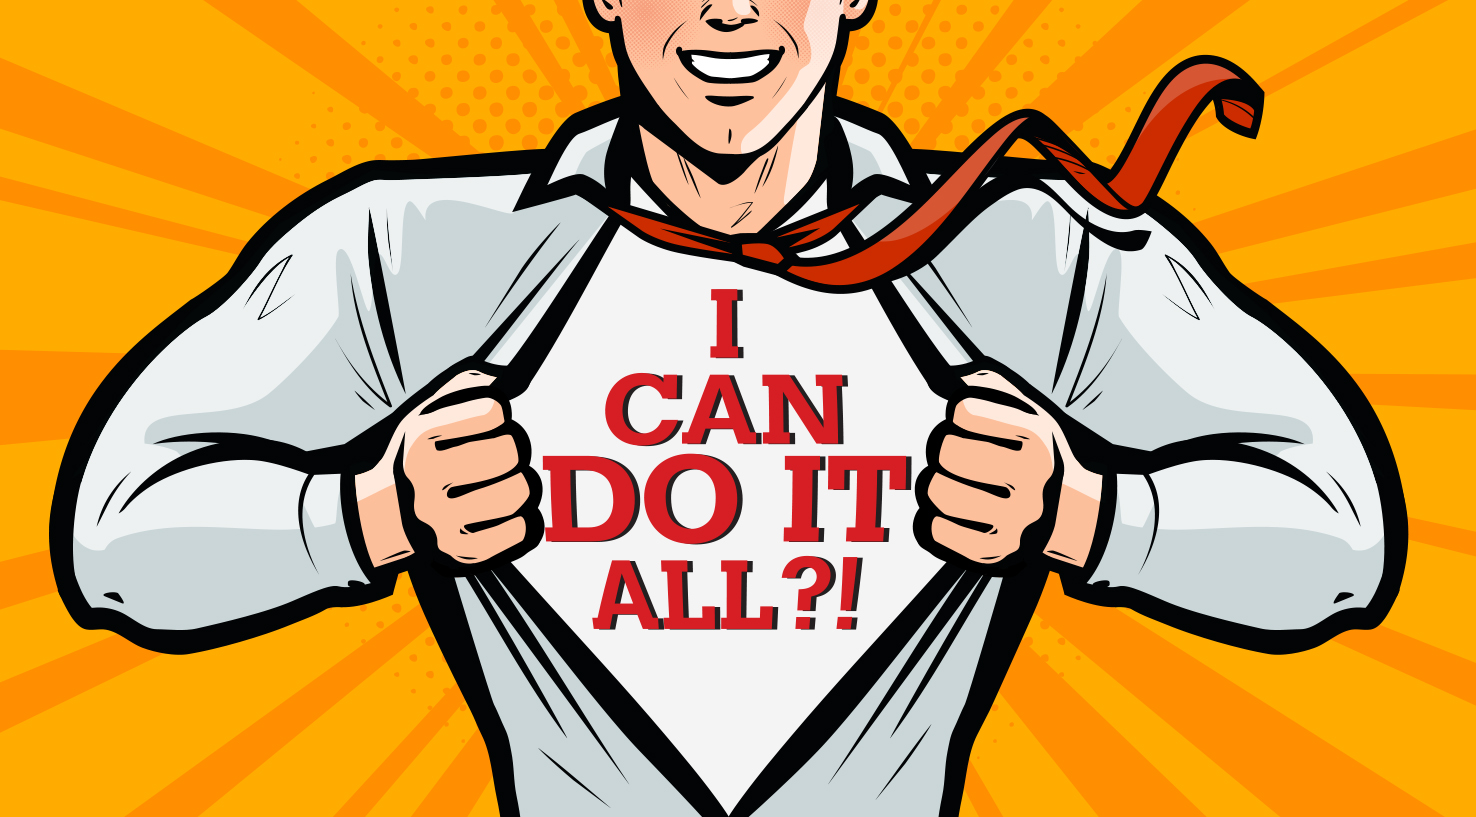 Do You Suffer from the 'I Can Do It All' Mindset?